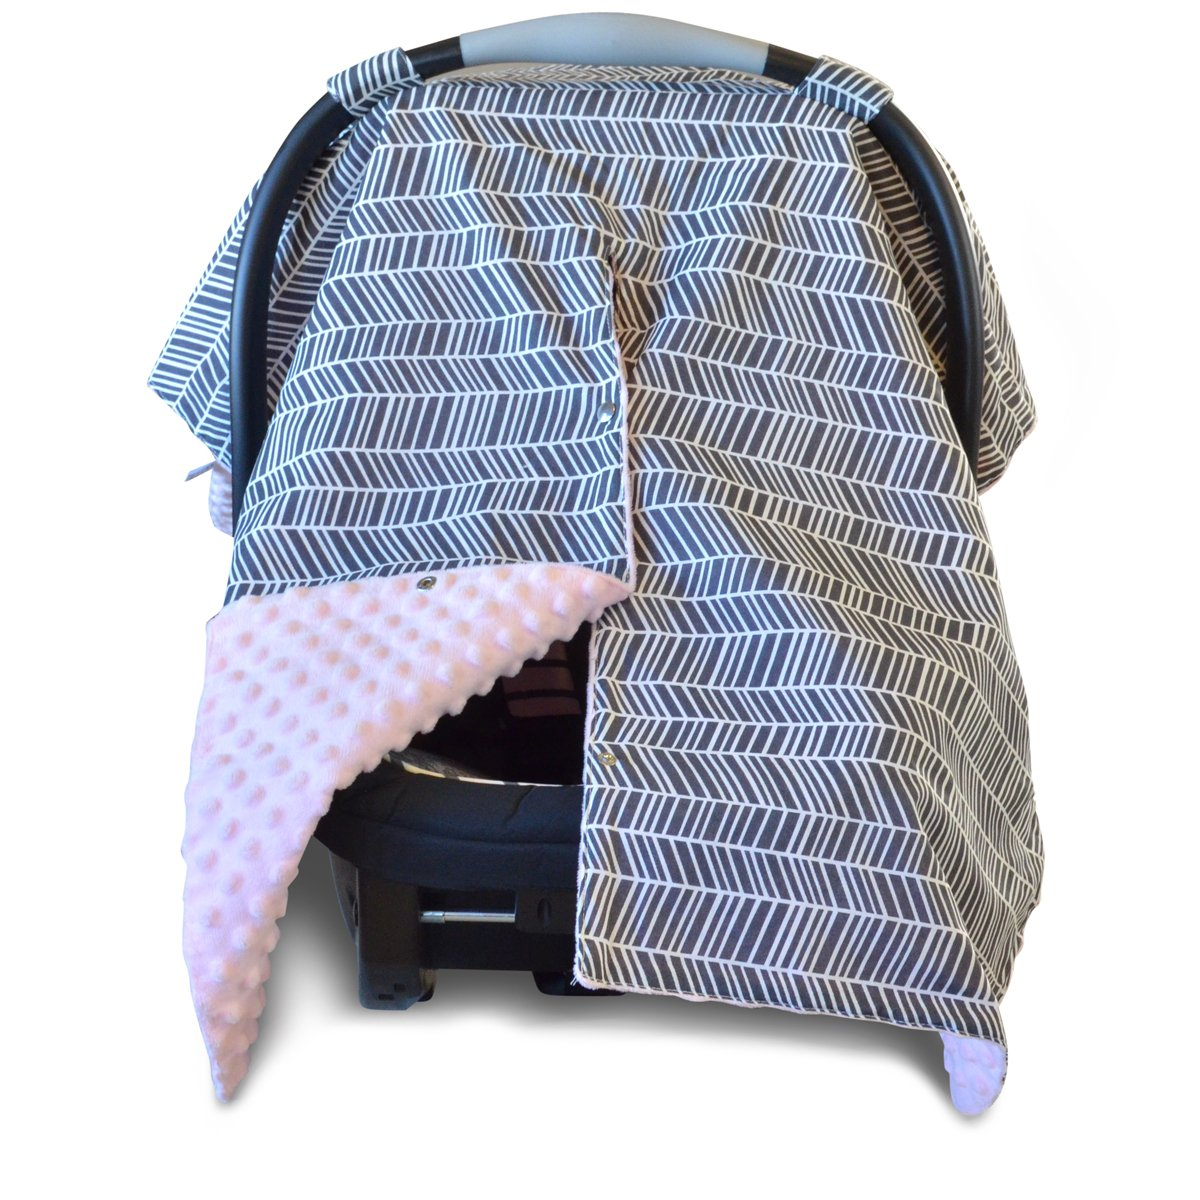 Kids N' Such 2 in 1 Car Seat Canopy Cover with Peekaboo Opening™ - Large Herringbone Carseat Cover with Soft Pink Dot Minky | Best for Baby Girls | Doubles as a Nursing Cover for Breastfeeding